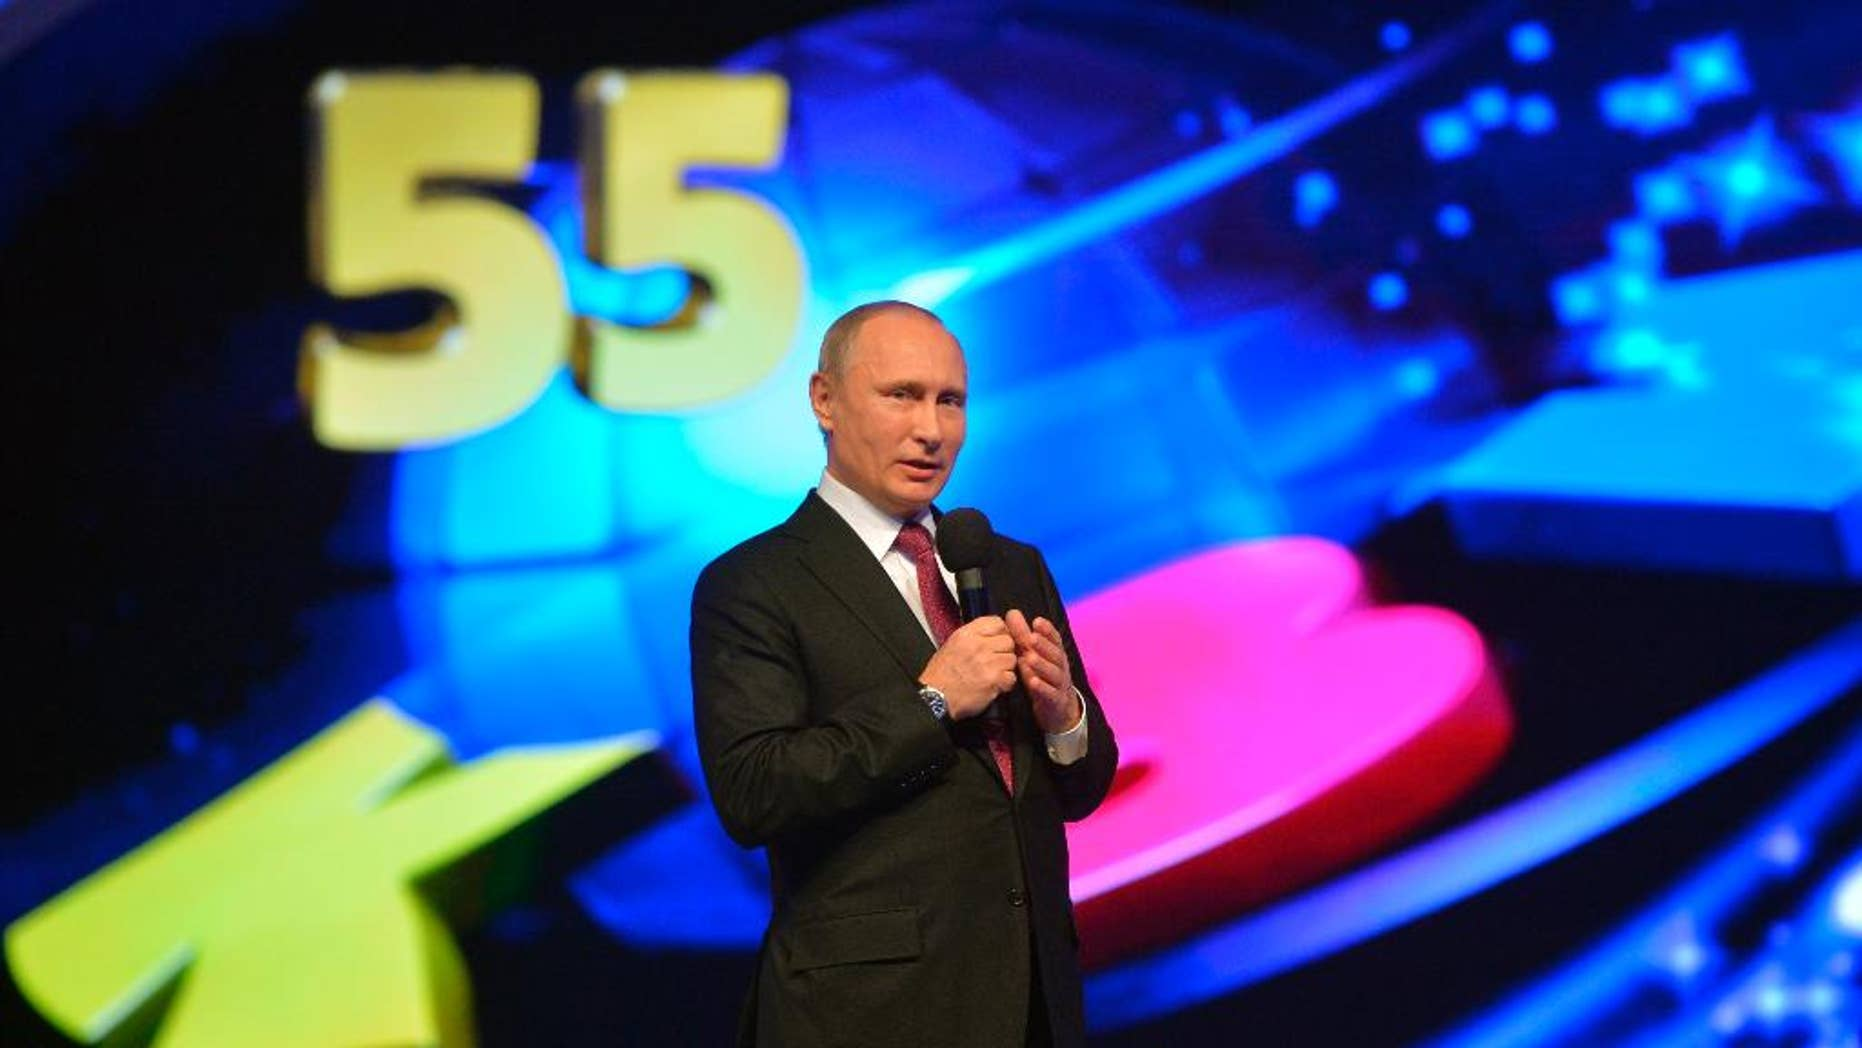 """Russian Prime Minister Vladimir Putin attends the anniversary game of international club comic and TV game show """"KVN"""", in the Kremlin, celebrating the 55th anniversary of the airing in Moscow, Russia, Sunday, Nov. 27, 2016.  The KVN show is a humourous public talent competition for teams of mostly student competitors, which has been shown on national TV since 1961. (Alexei Druzhinin / Sputnik, Kremlin Pool Photo via AP)"""